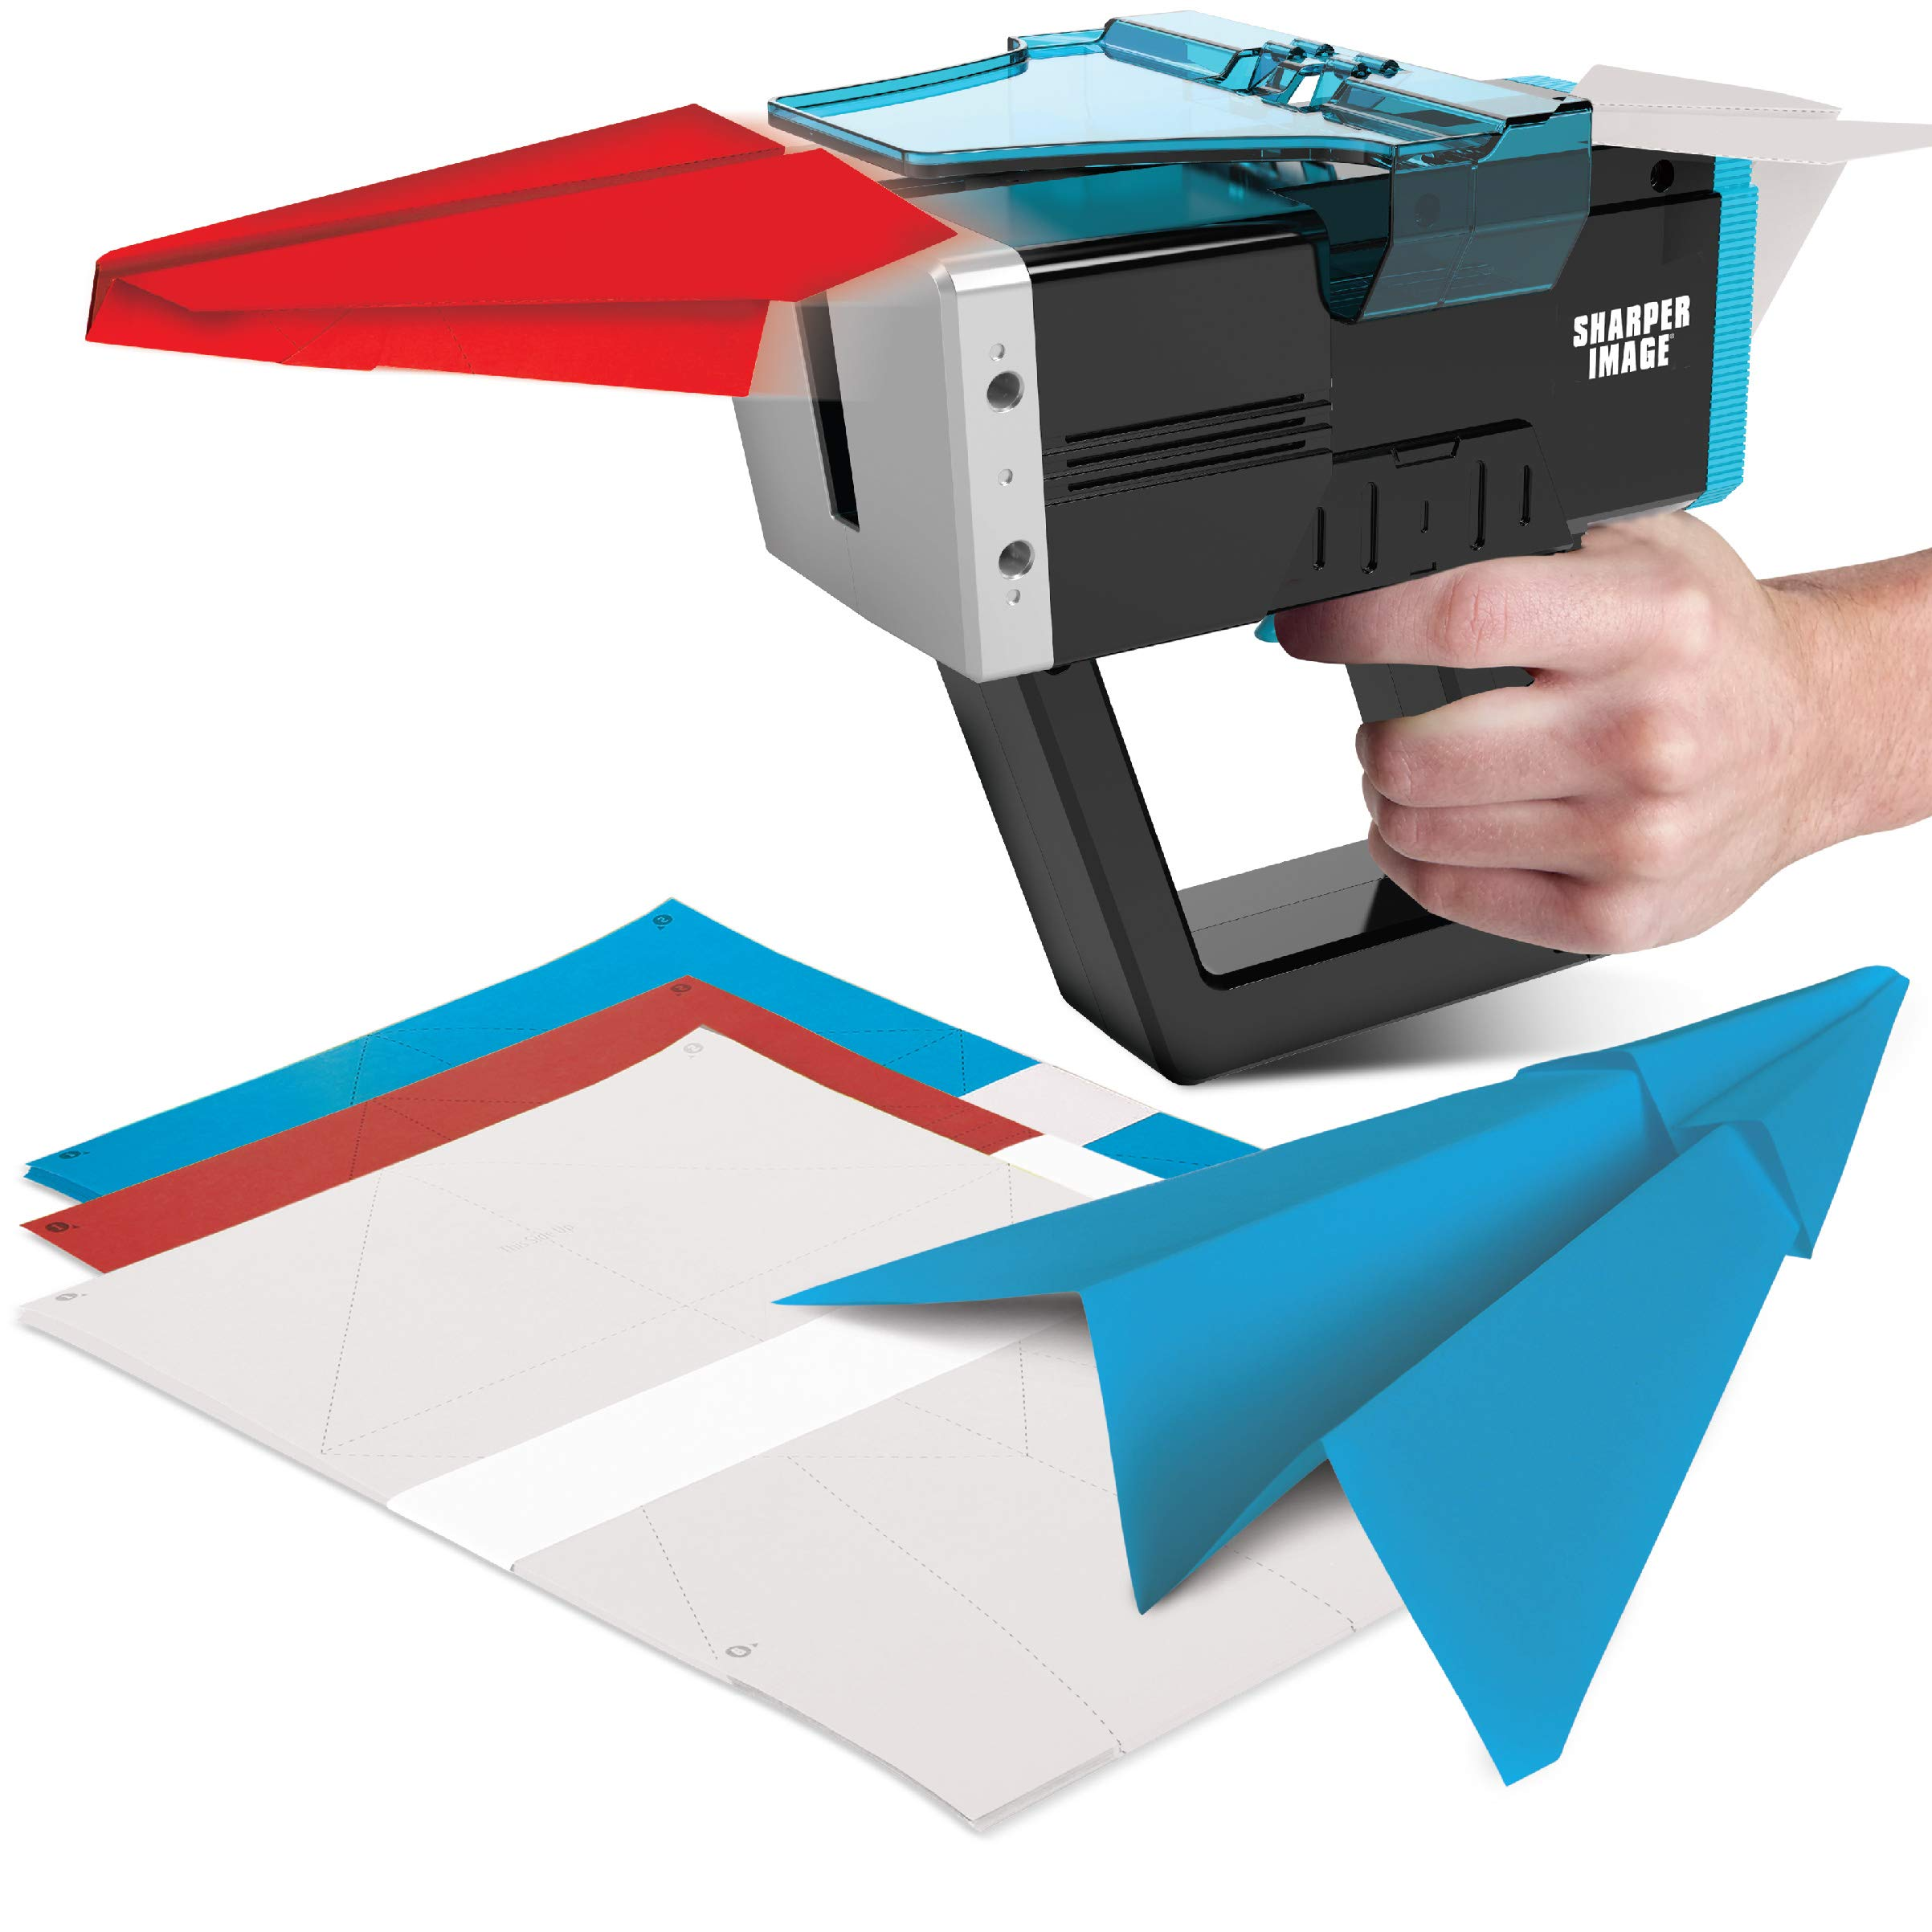 Sharper Image DIY Paper Airplane High Velocity Launcher, Battery-Power Motorized Plane Thrower, Fun Gadget, Adults and Teens, Indoor or Outdoor, Included Sheets, Arts and Crafts, Launch Your Gliders